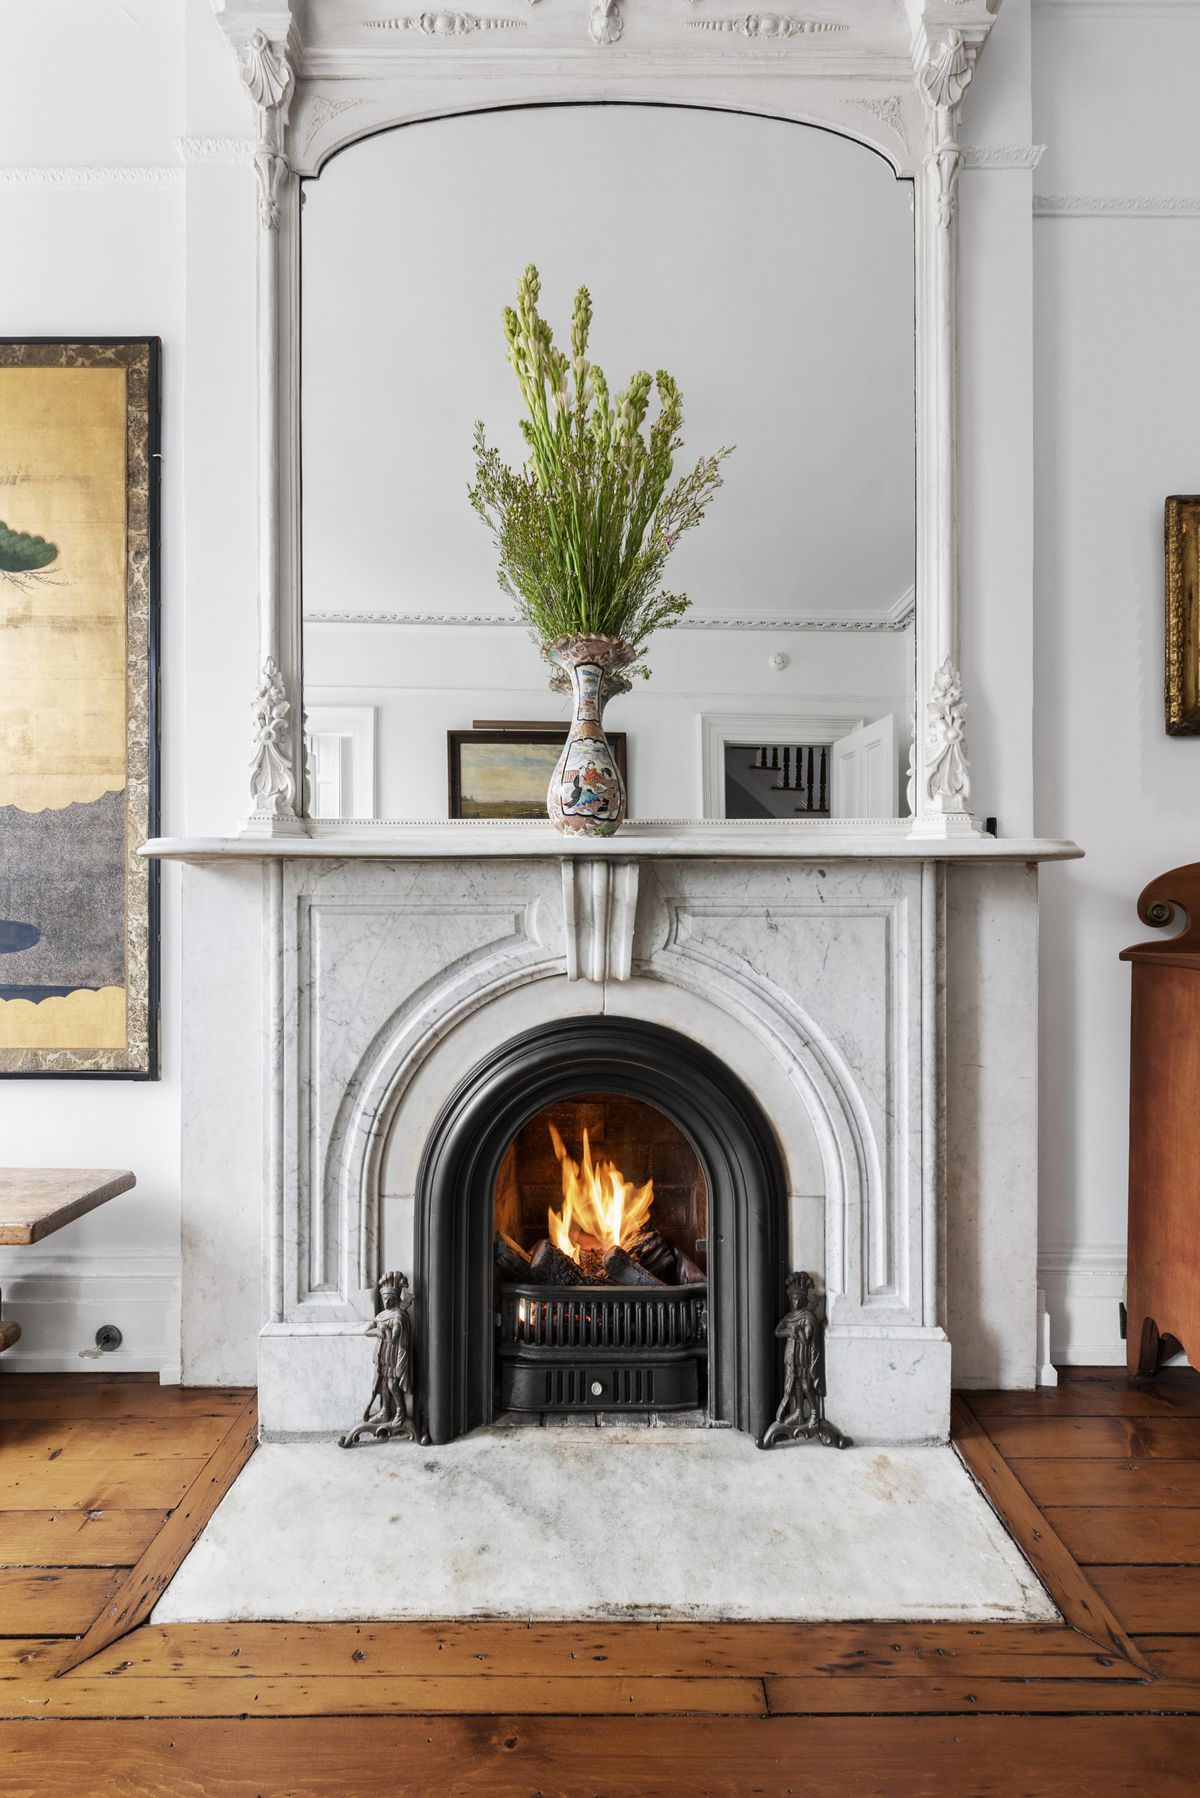 A wood-burning fireplace with a mantle.